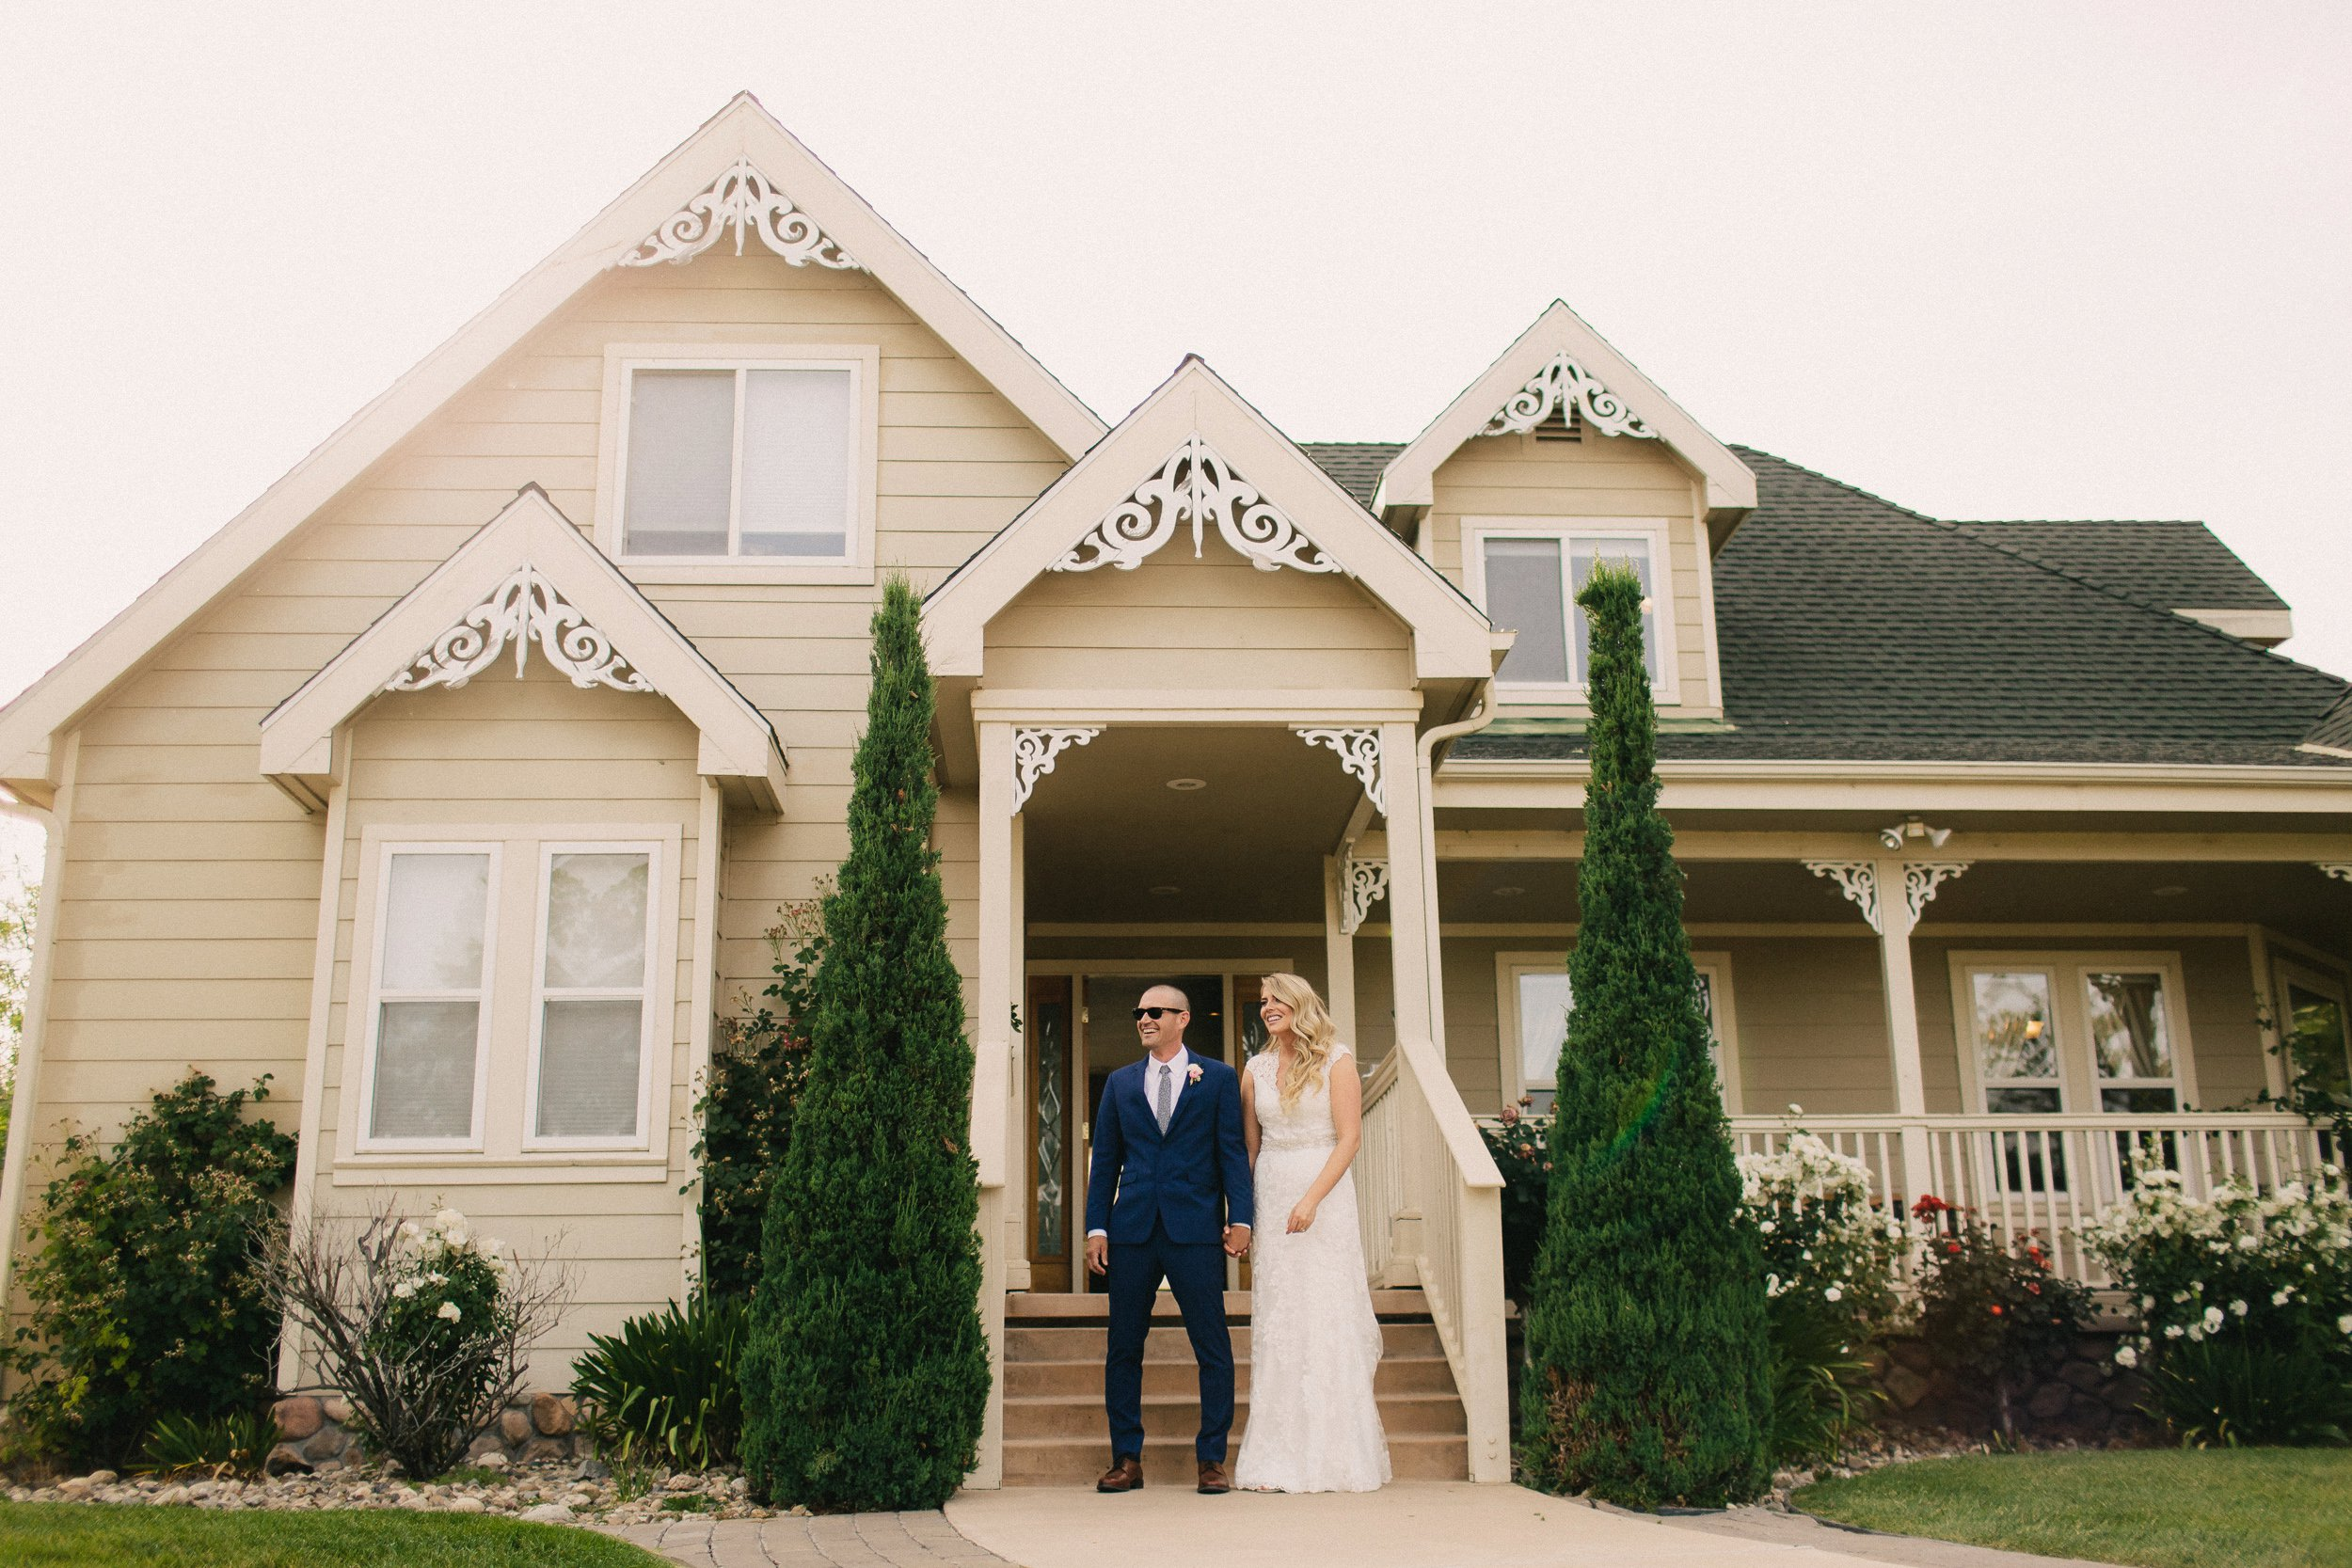 CaliforniaWedding|LindenCloverPhotography_0078.jpg